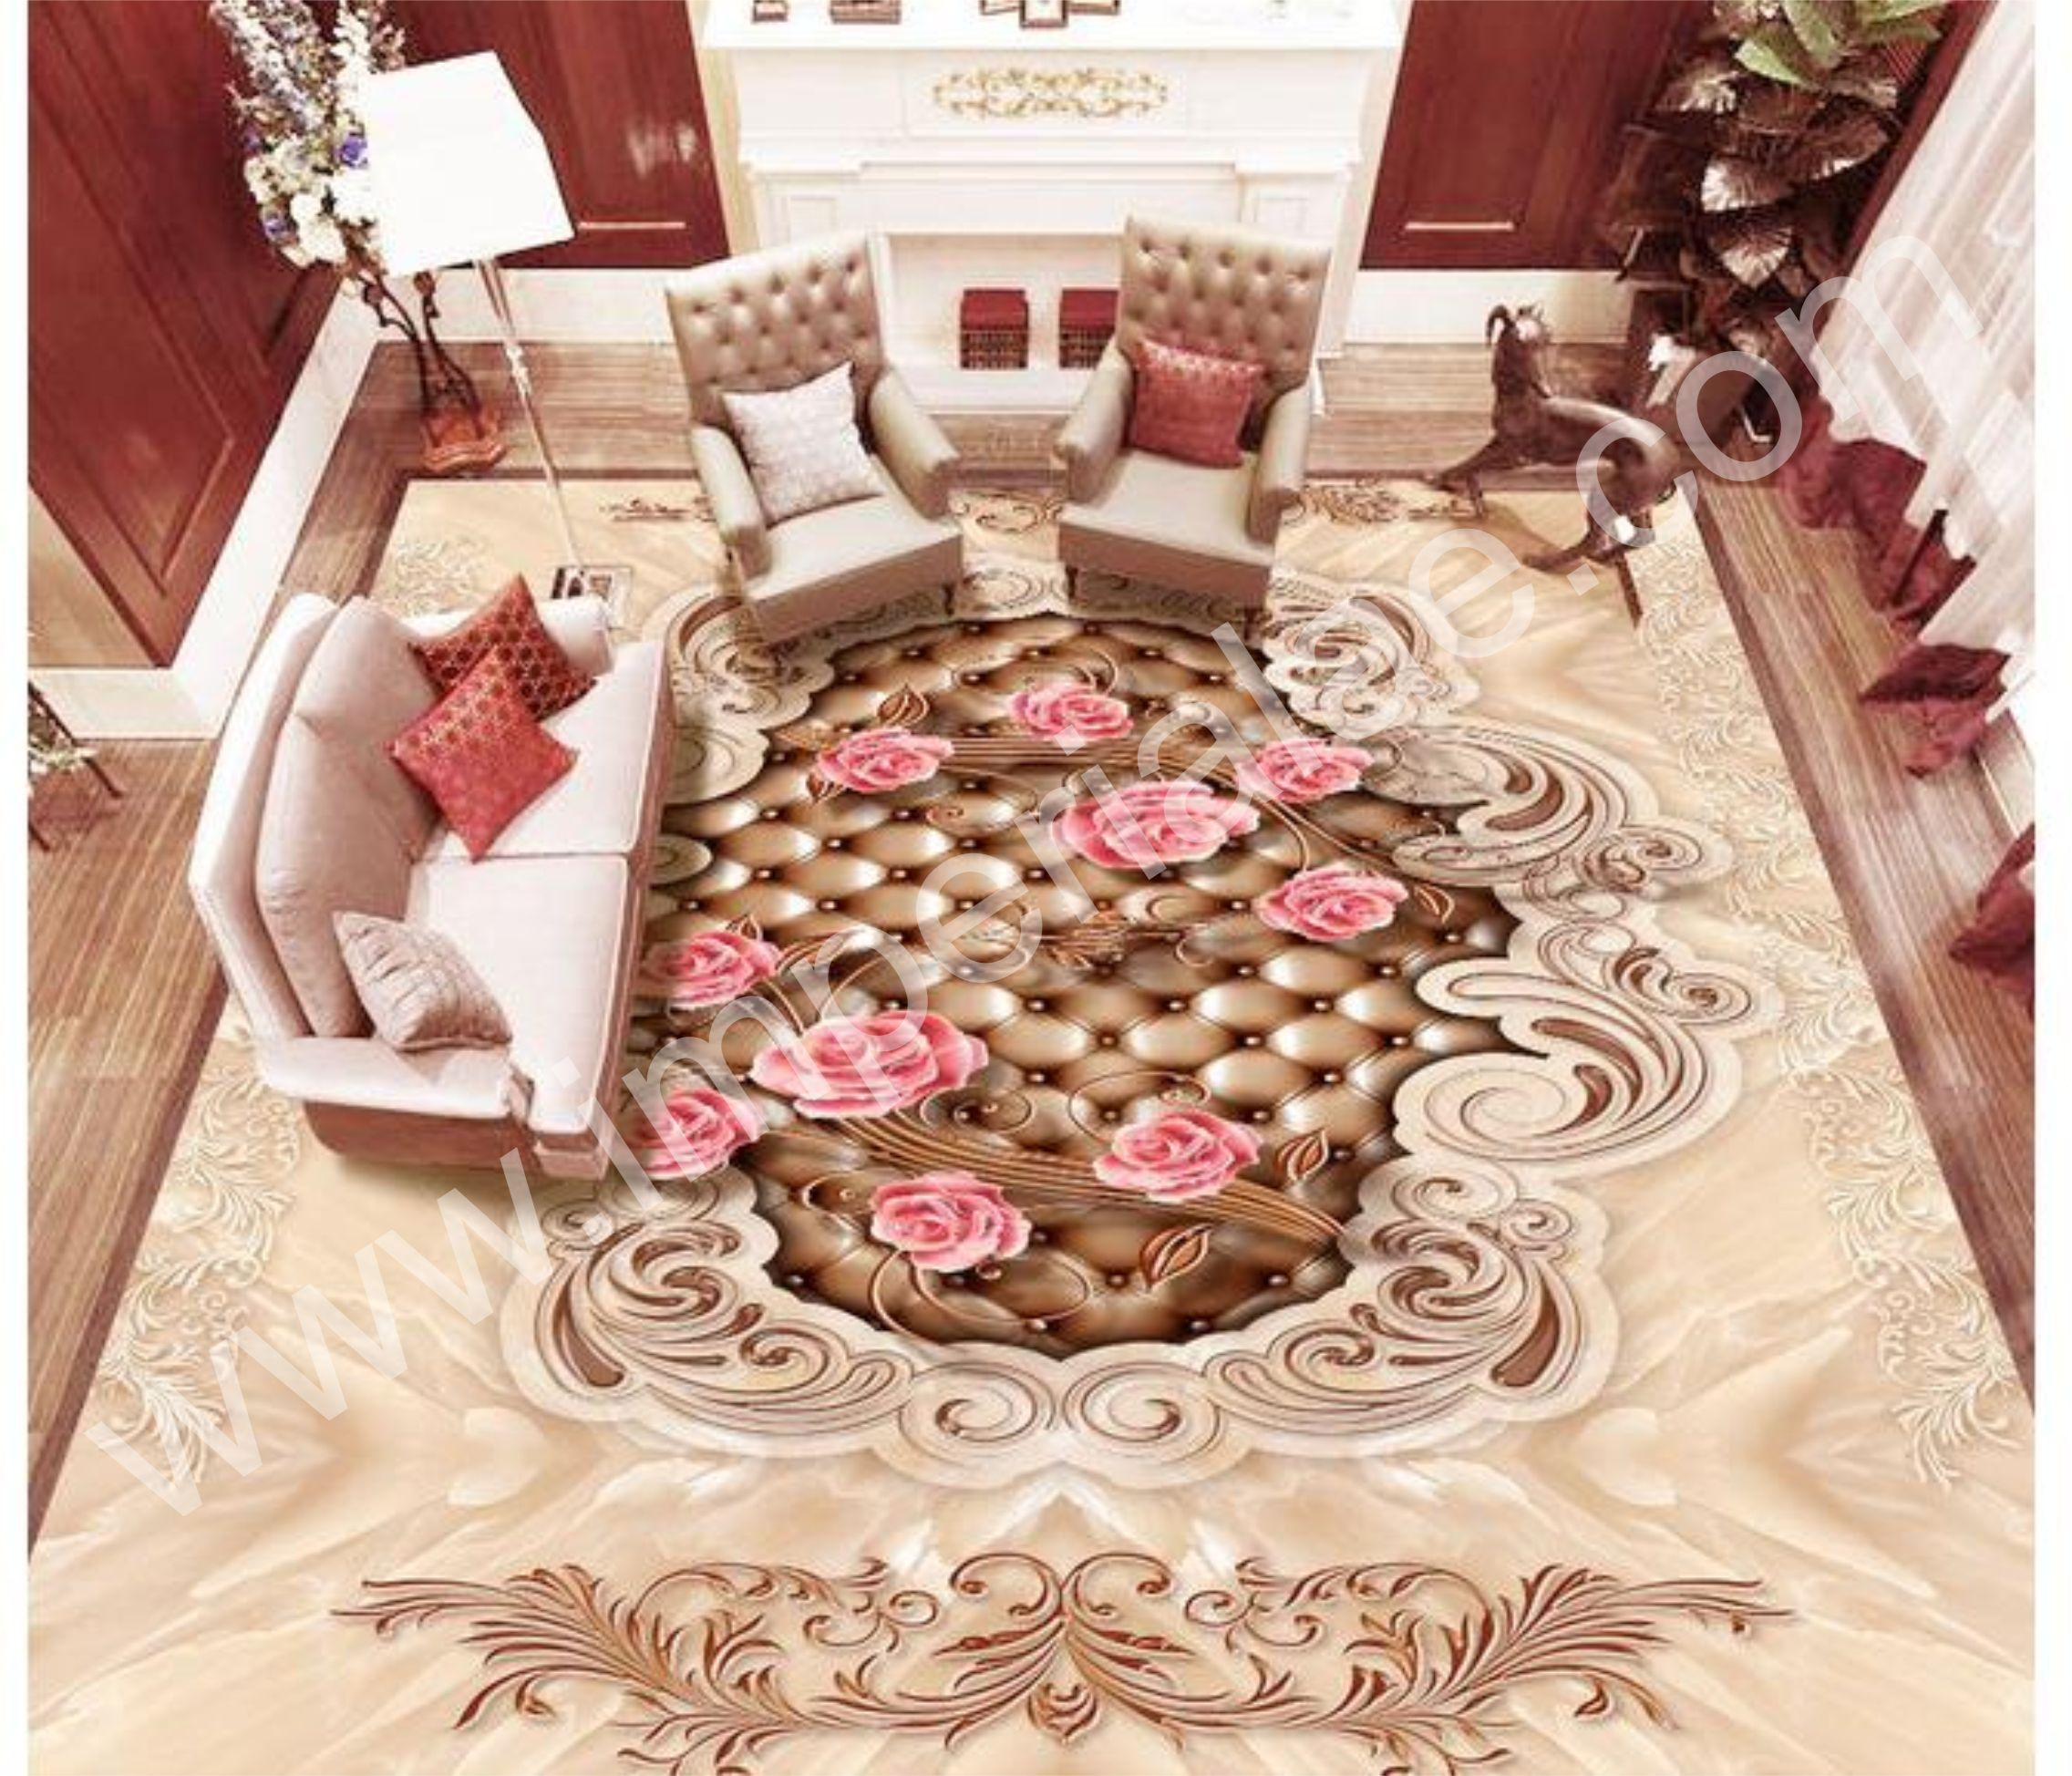 Wallpaper Dubai Is Most Widely Used Product Wallpaper Is Used To Cover And Dec Wallpaper Living Room Design Living Room Wallpaper Living Room Wall Wallpaper